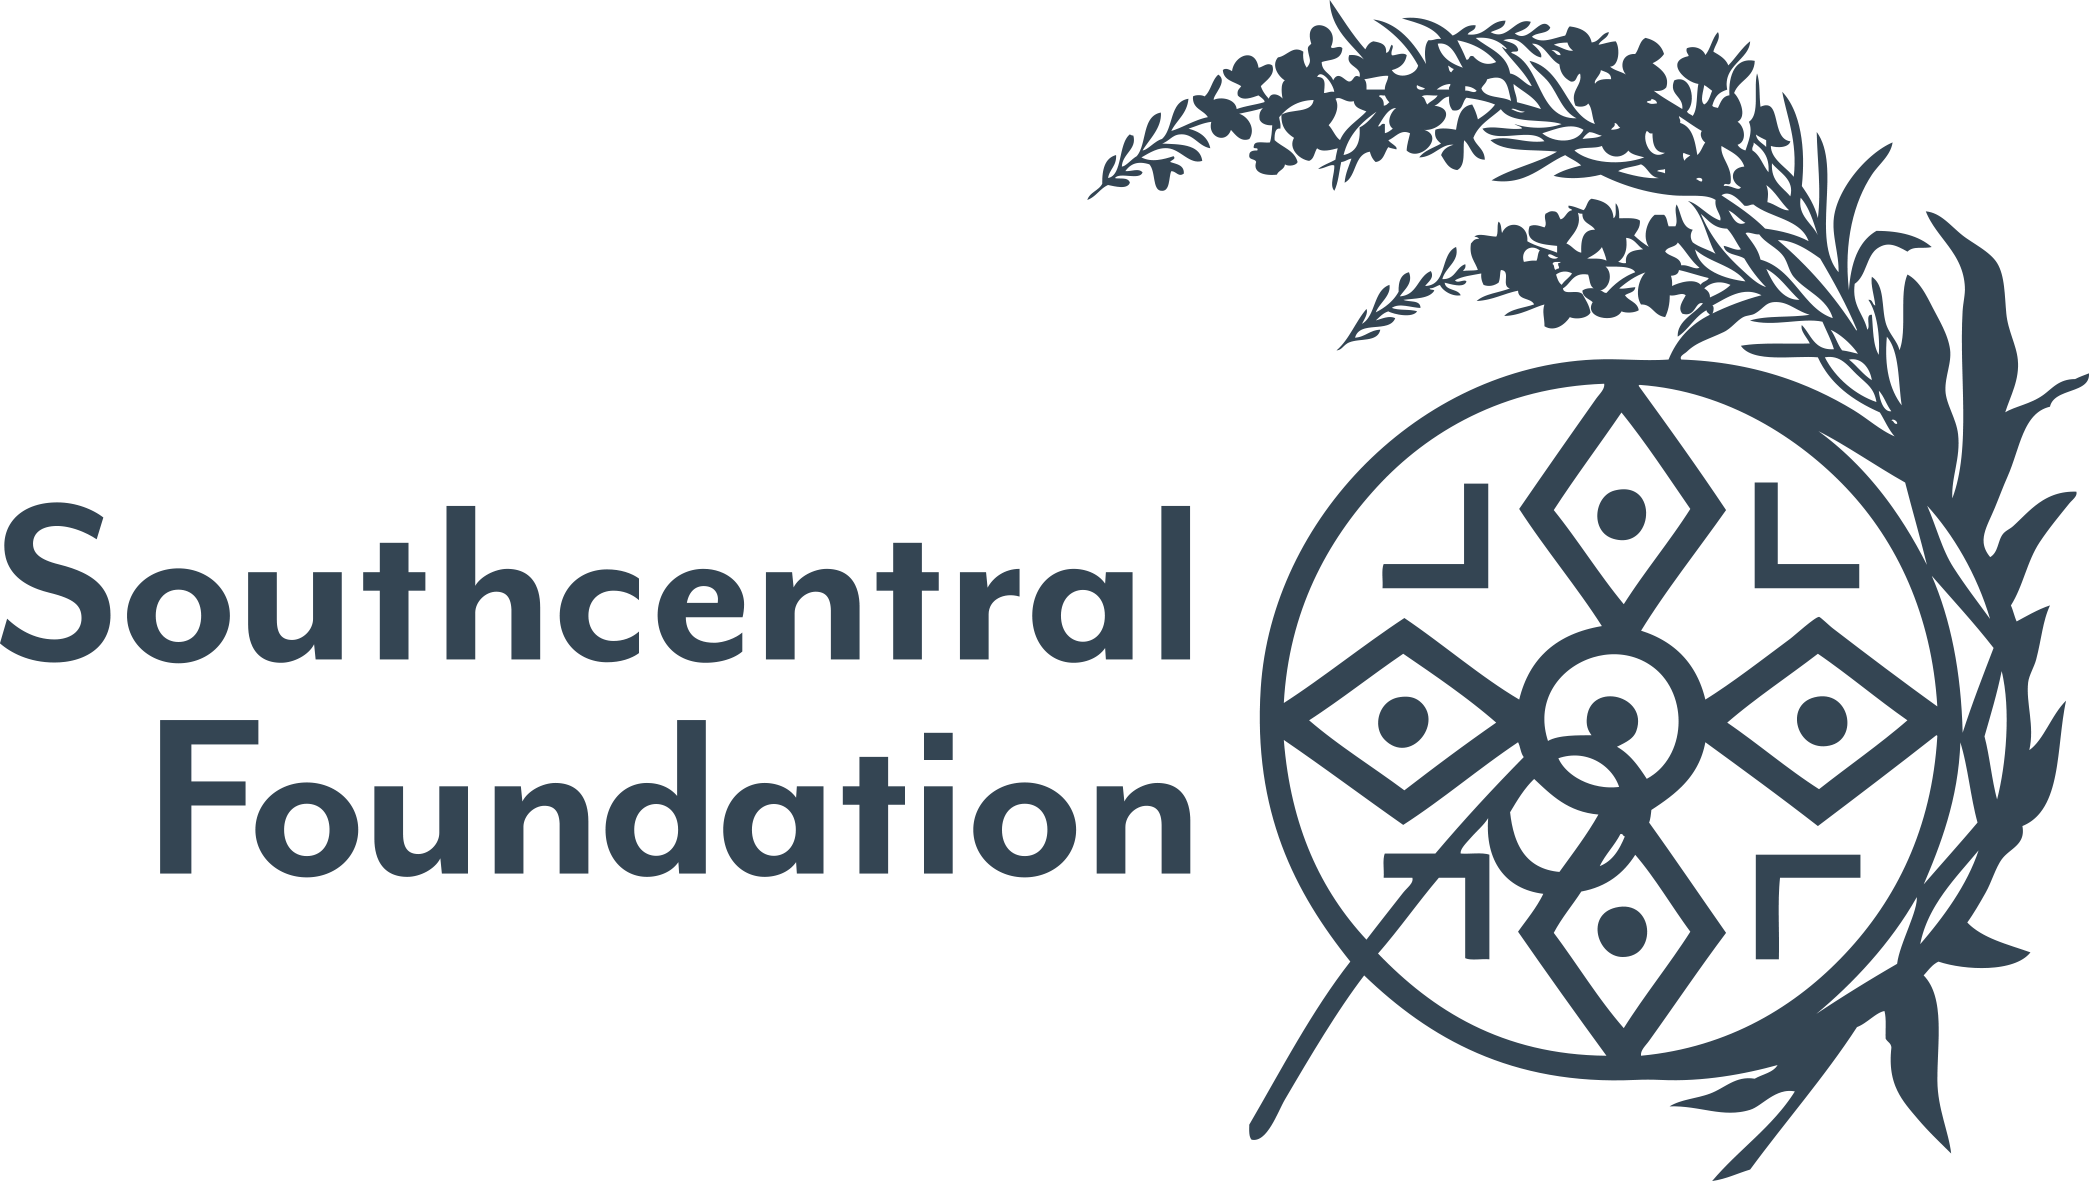 southcentral foundation logo.png